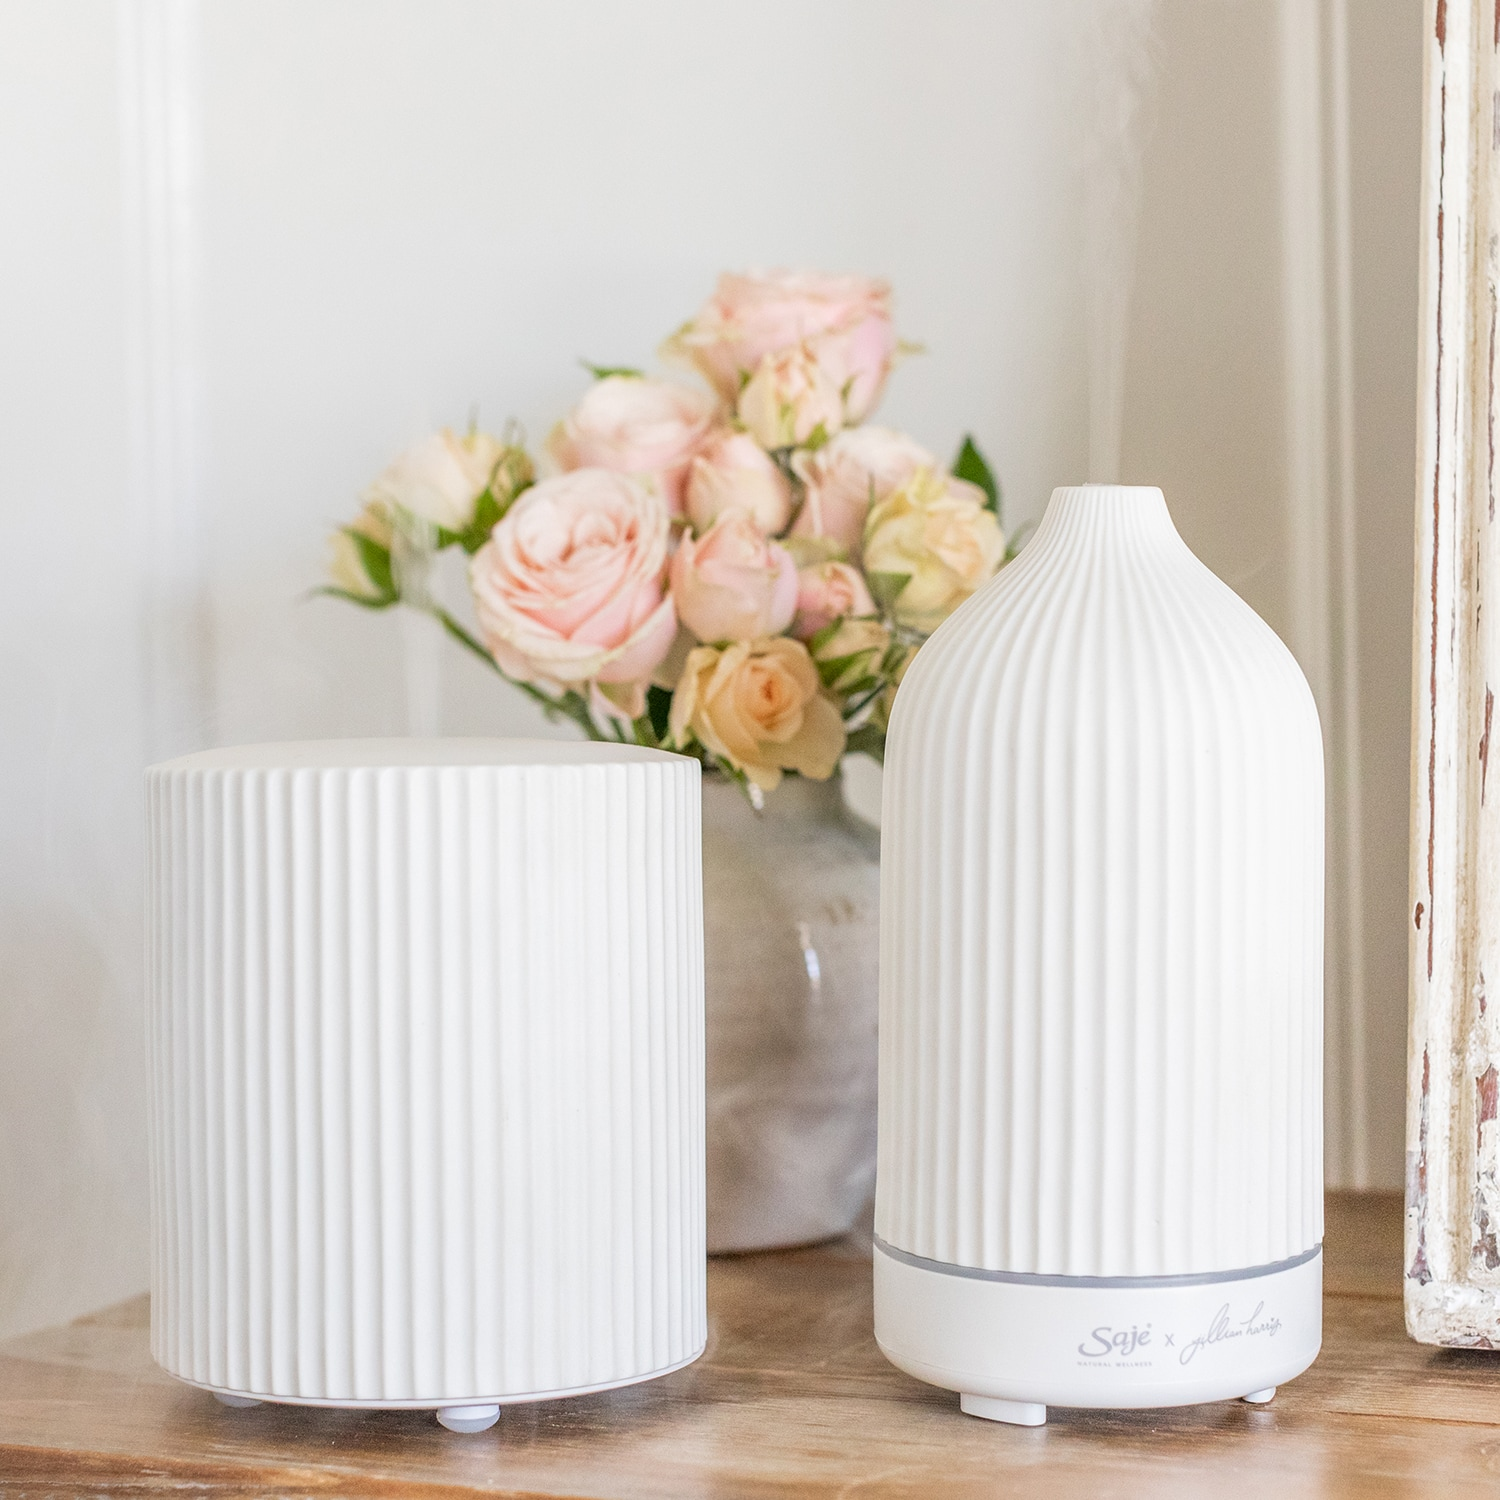 Jillian Harris limited edition diffusers